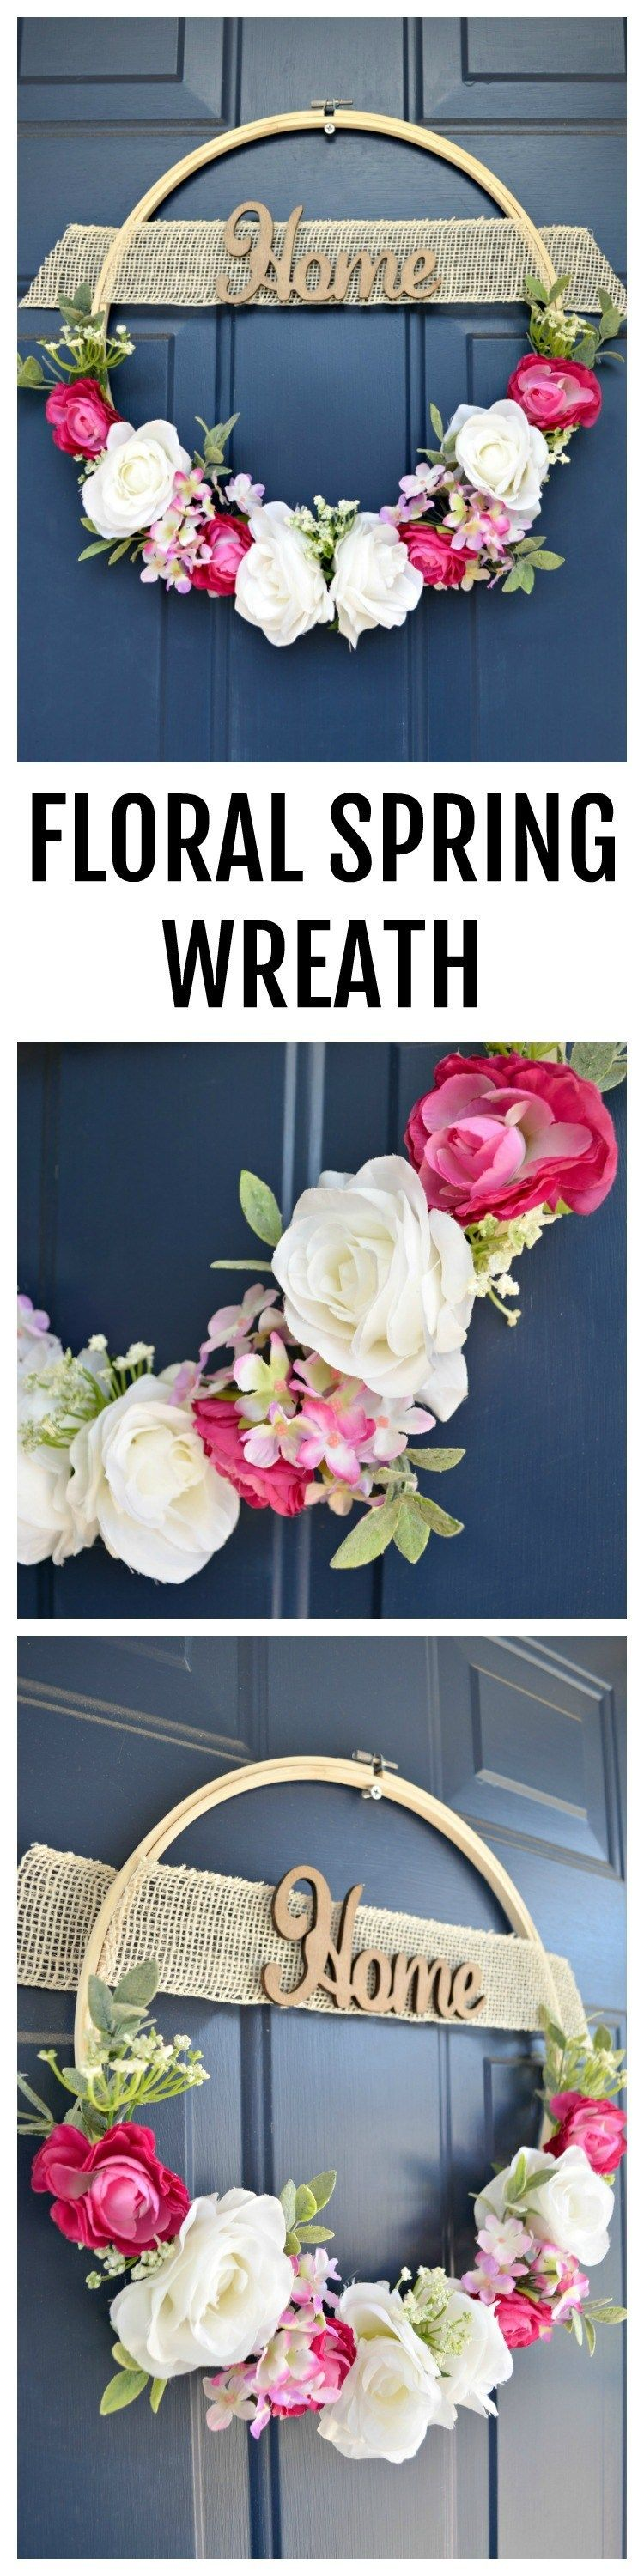 Info's : Floral Spring Wreath